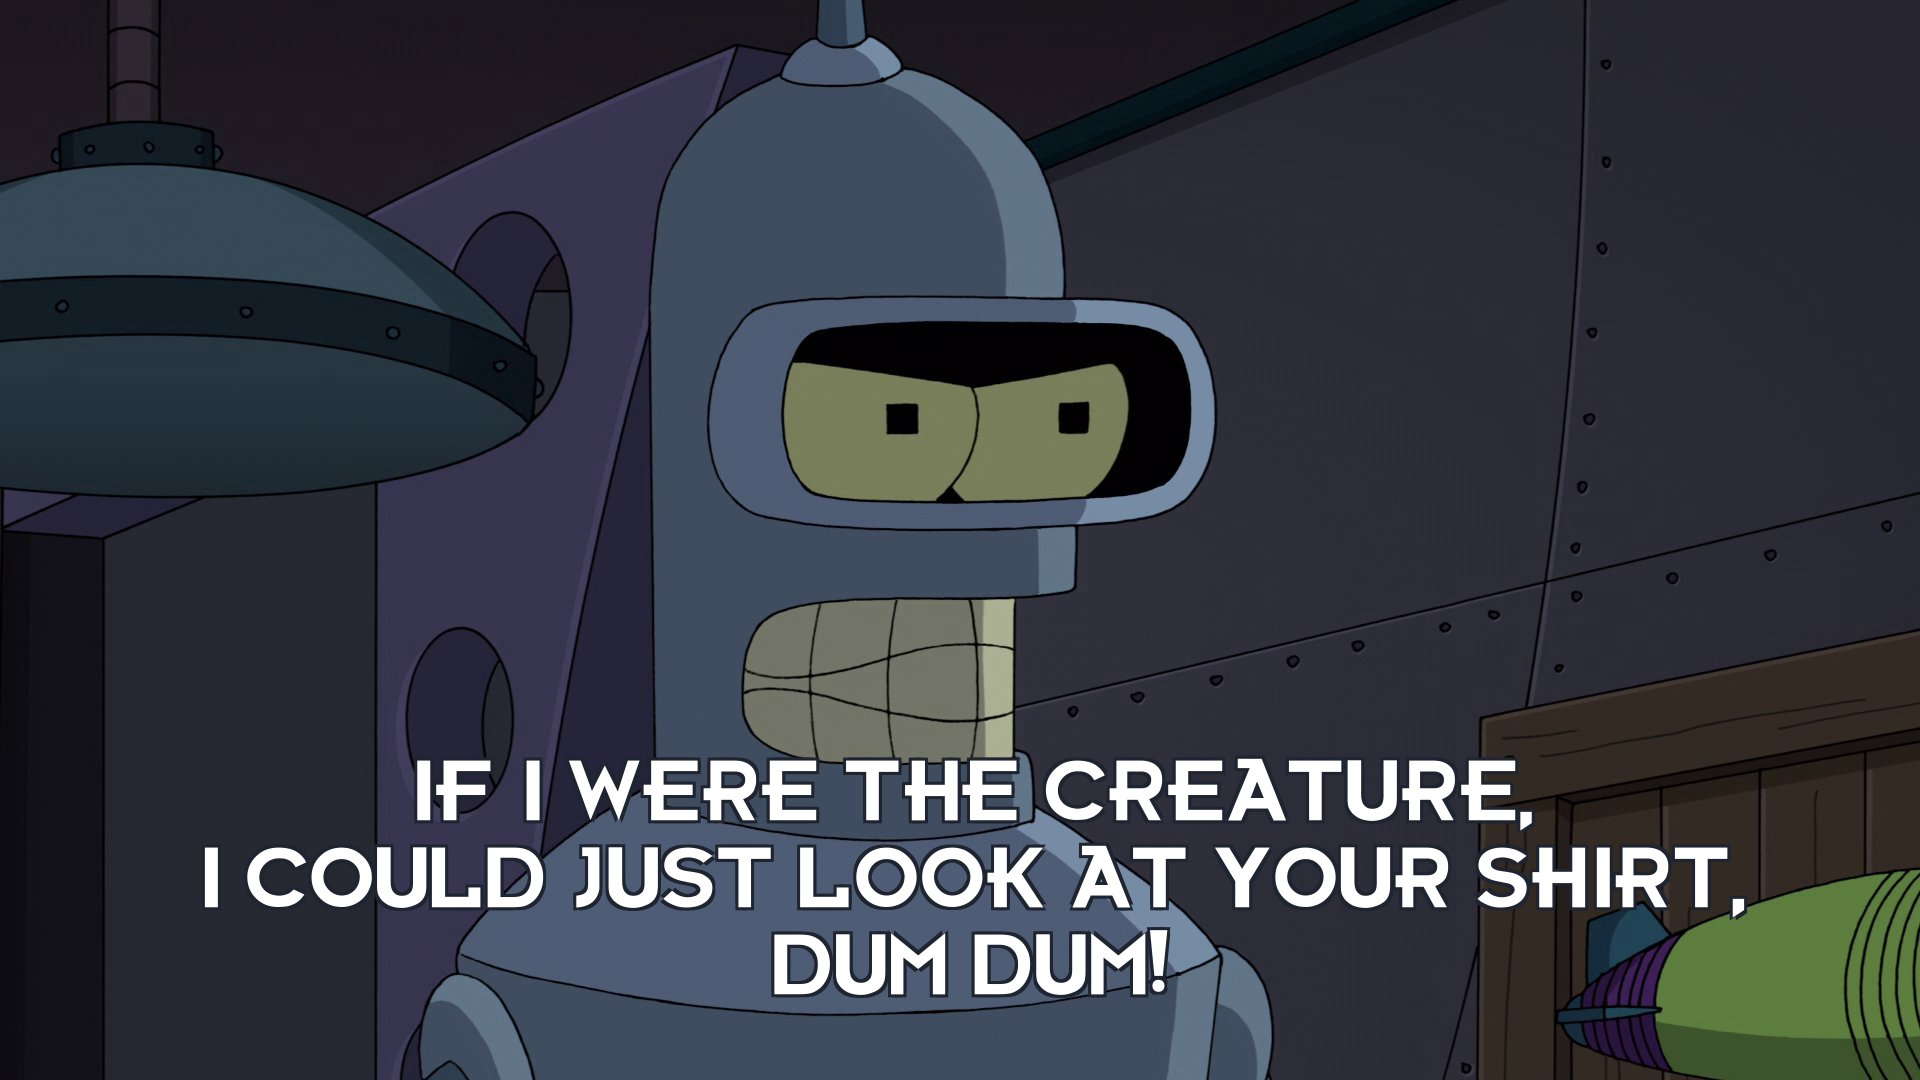 Bender Bending Rodriguez: If I were the creature, I could just look at your shirt, dum dum!